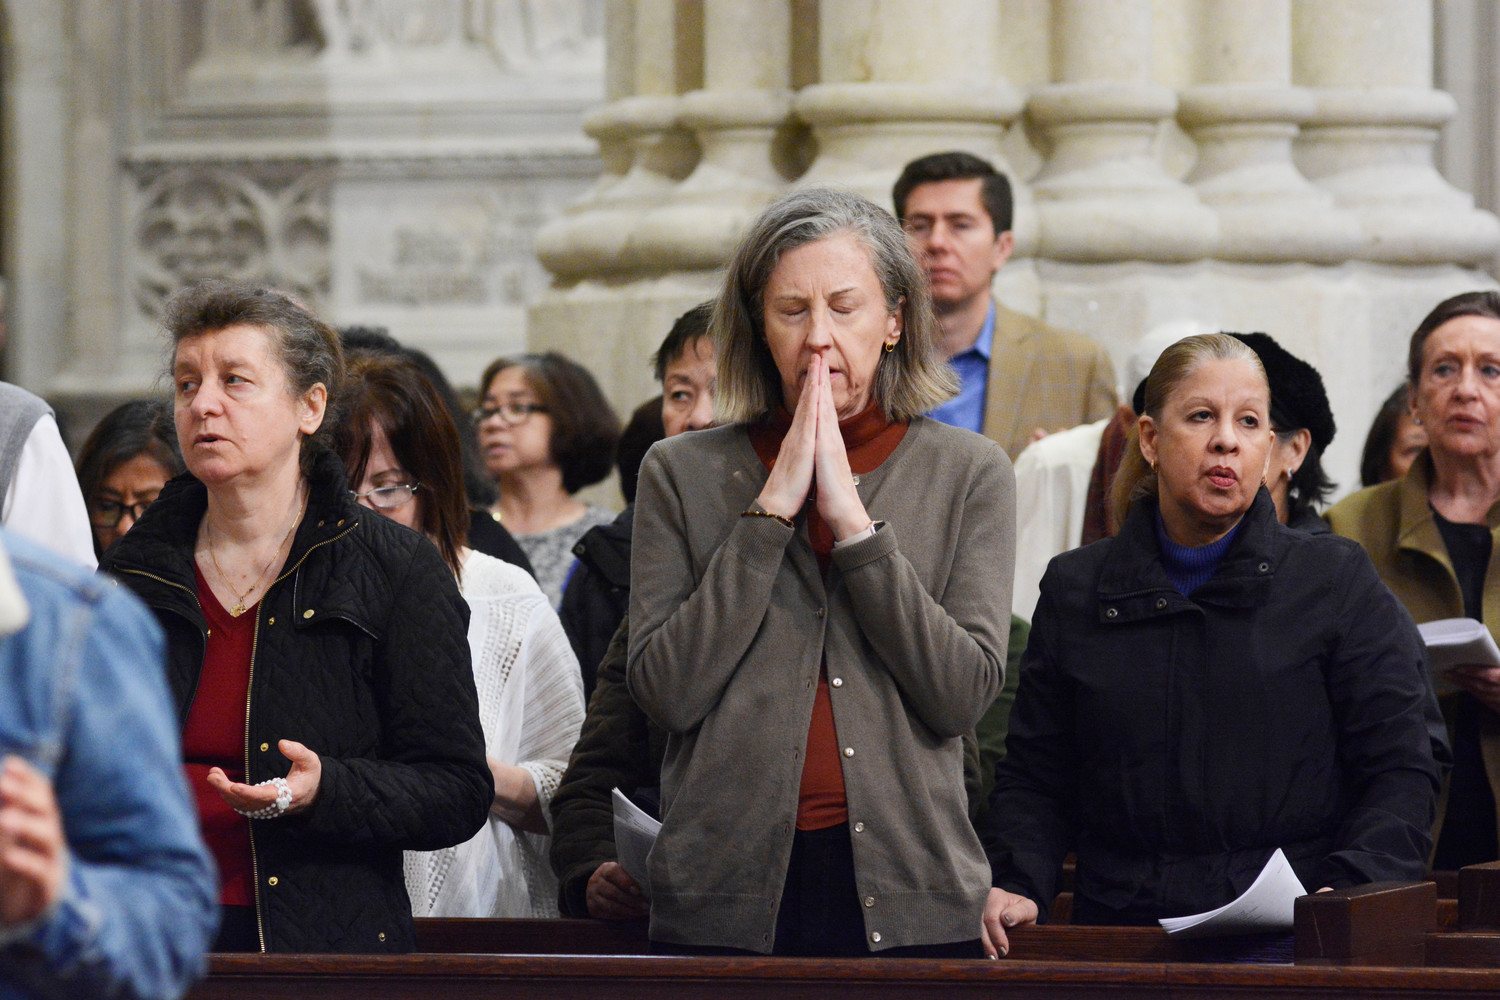 Congregants pray at the cathedral during the Three Hours' Reflection on the Passion and Death of Jesus.